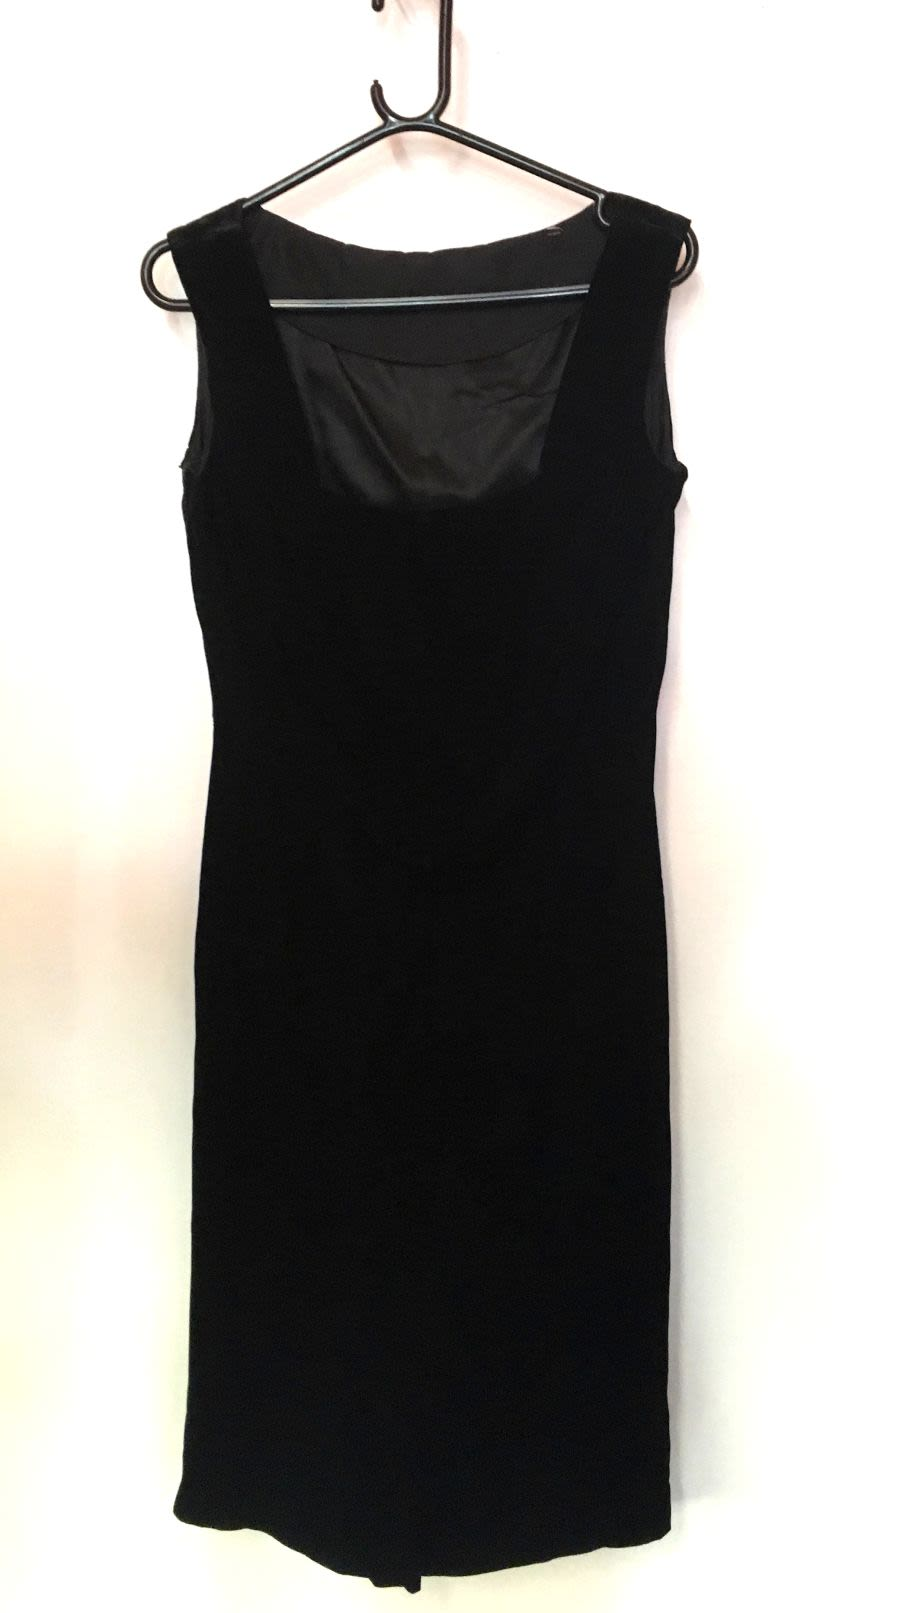 Vintage Women's 1980's Black Velvet Drape Detail Wiggle Fit Dress